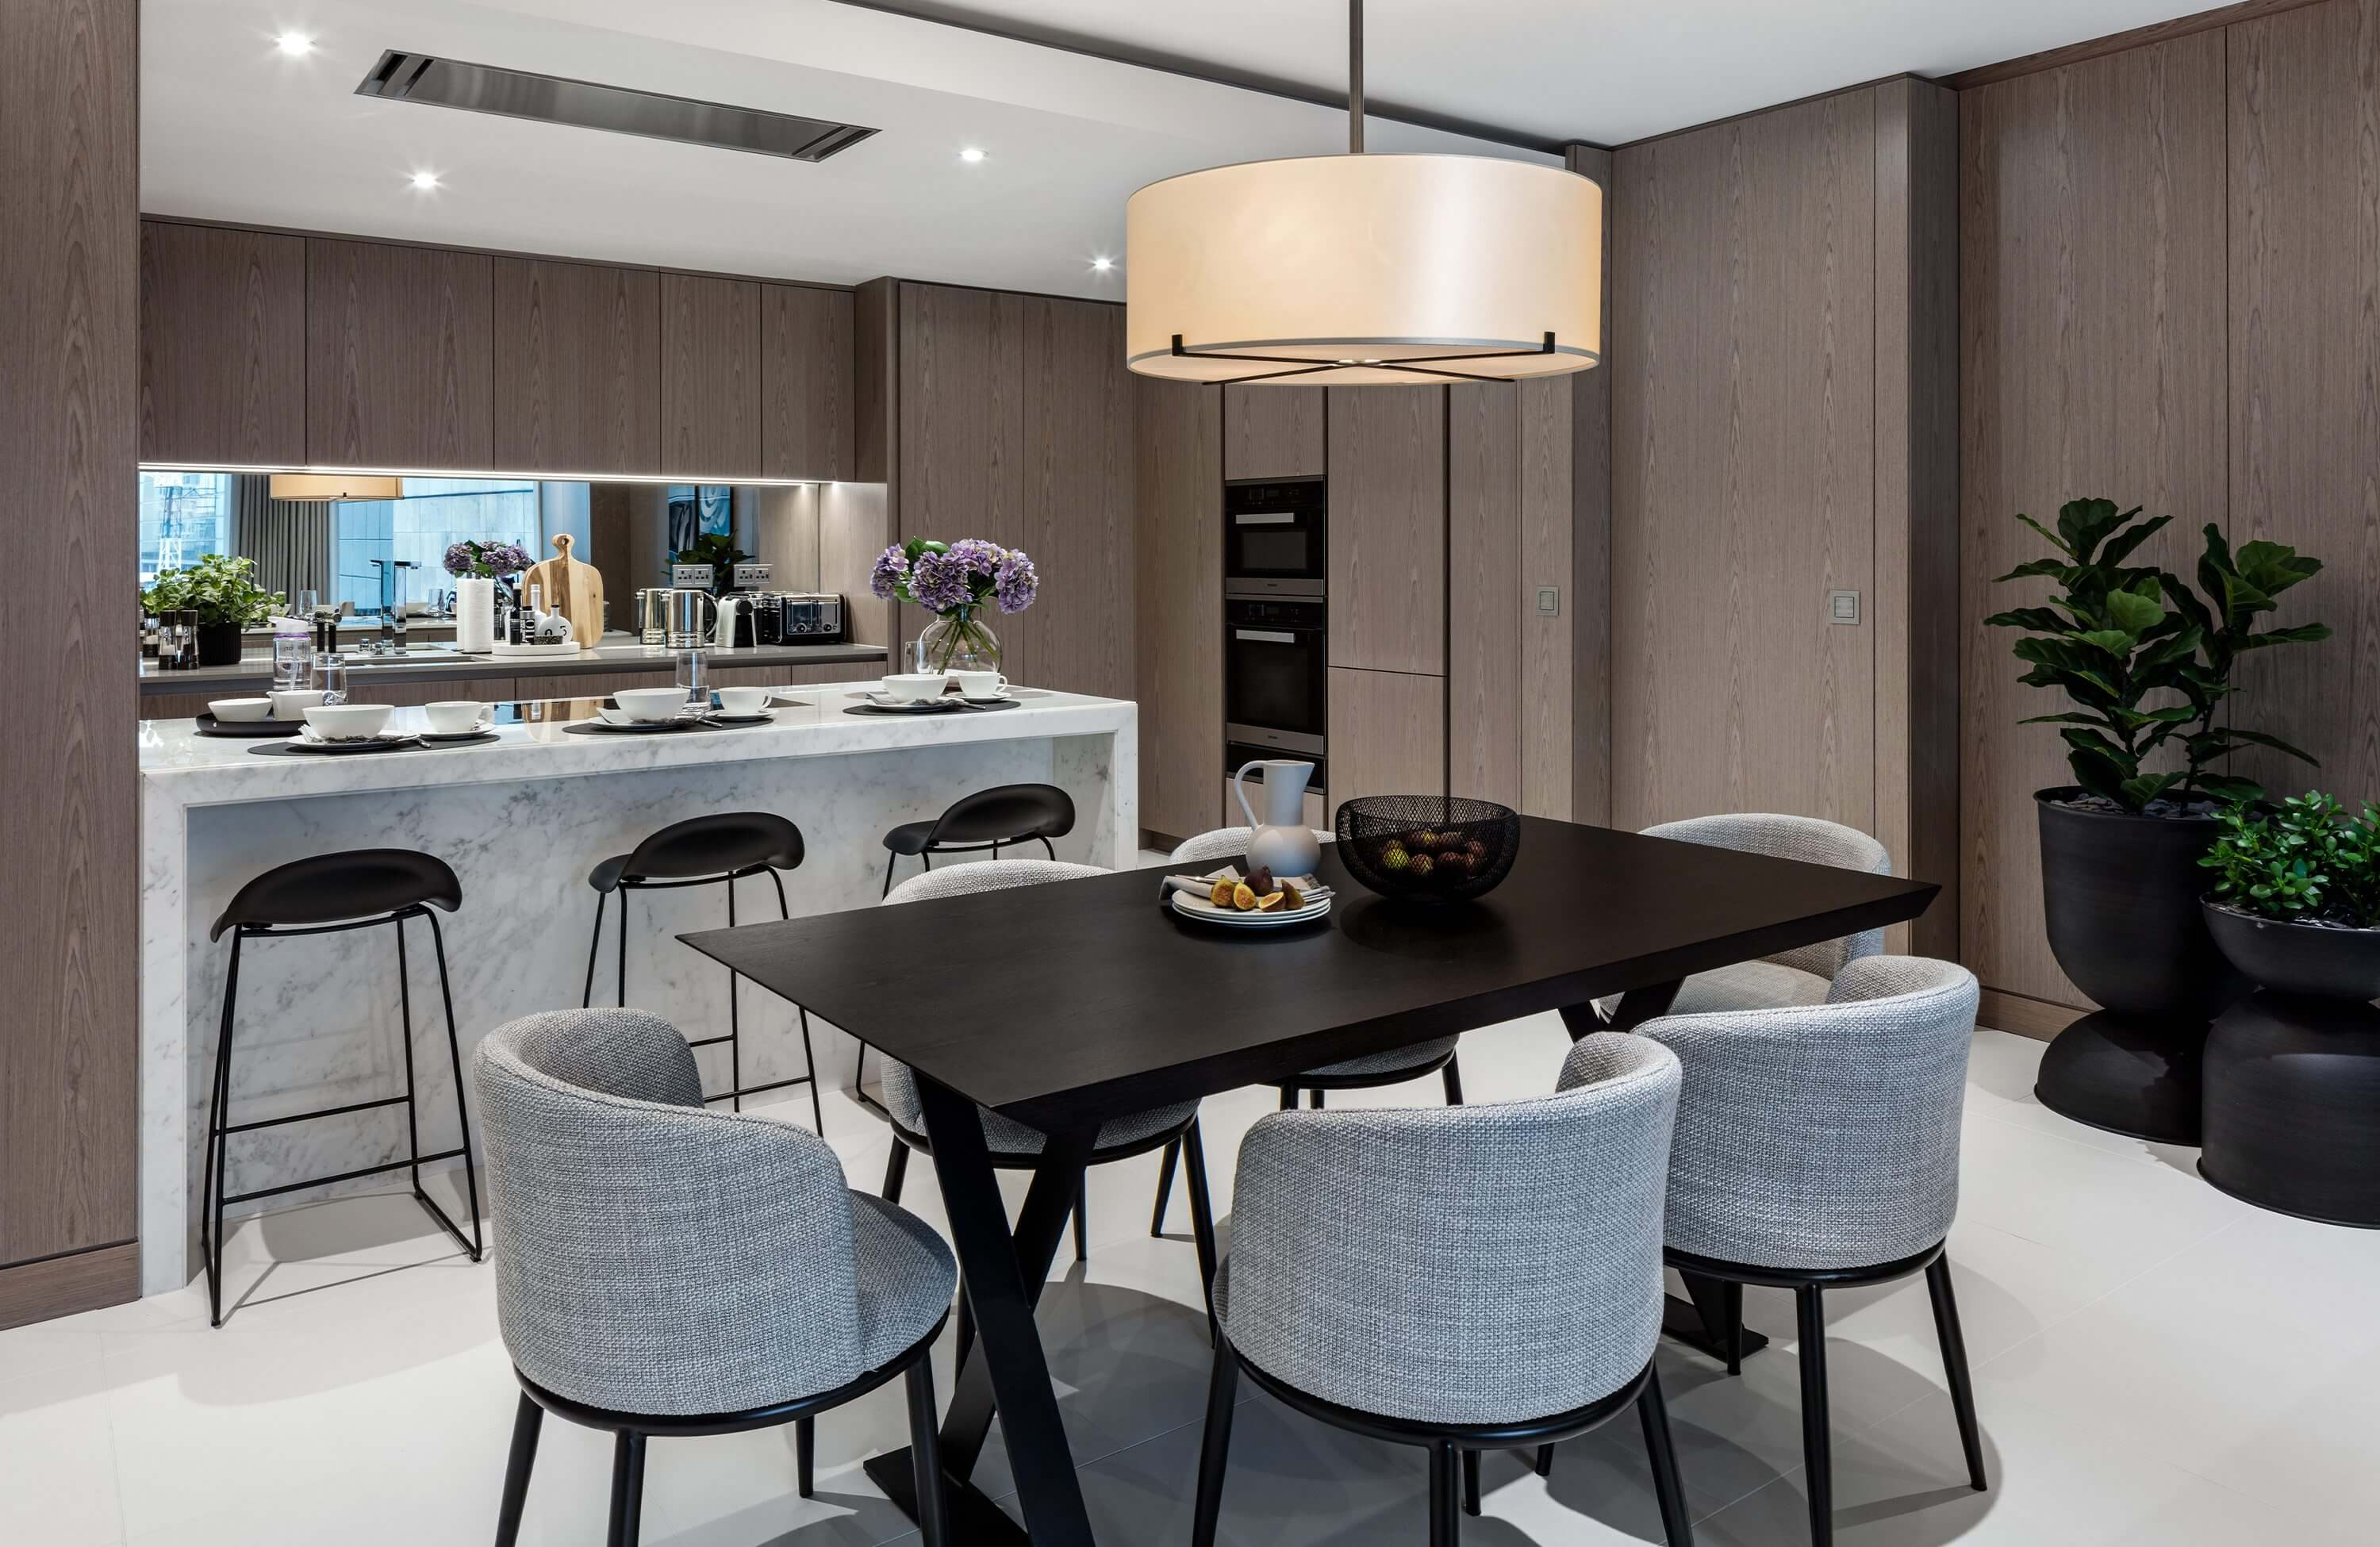 Honky Interior Design Luxury Apartment Hackney Road Dining and Kitchen